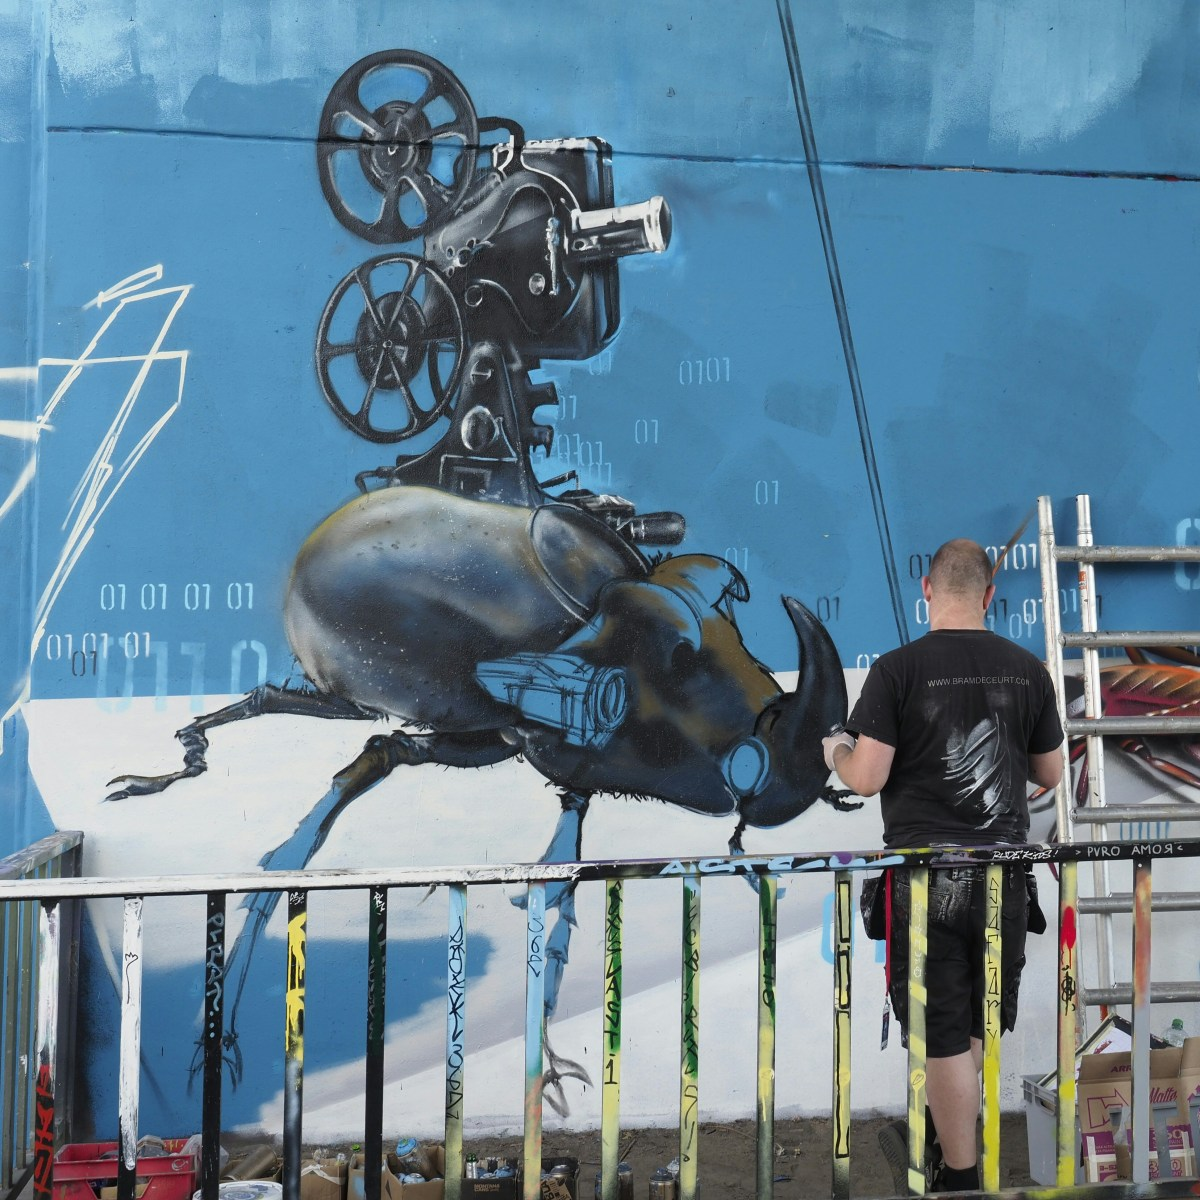 Meeting of Styles Wiesbaden 2018 – Work in progress (03)